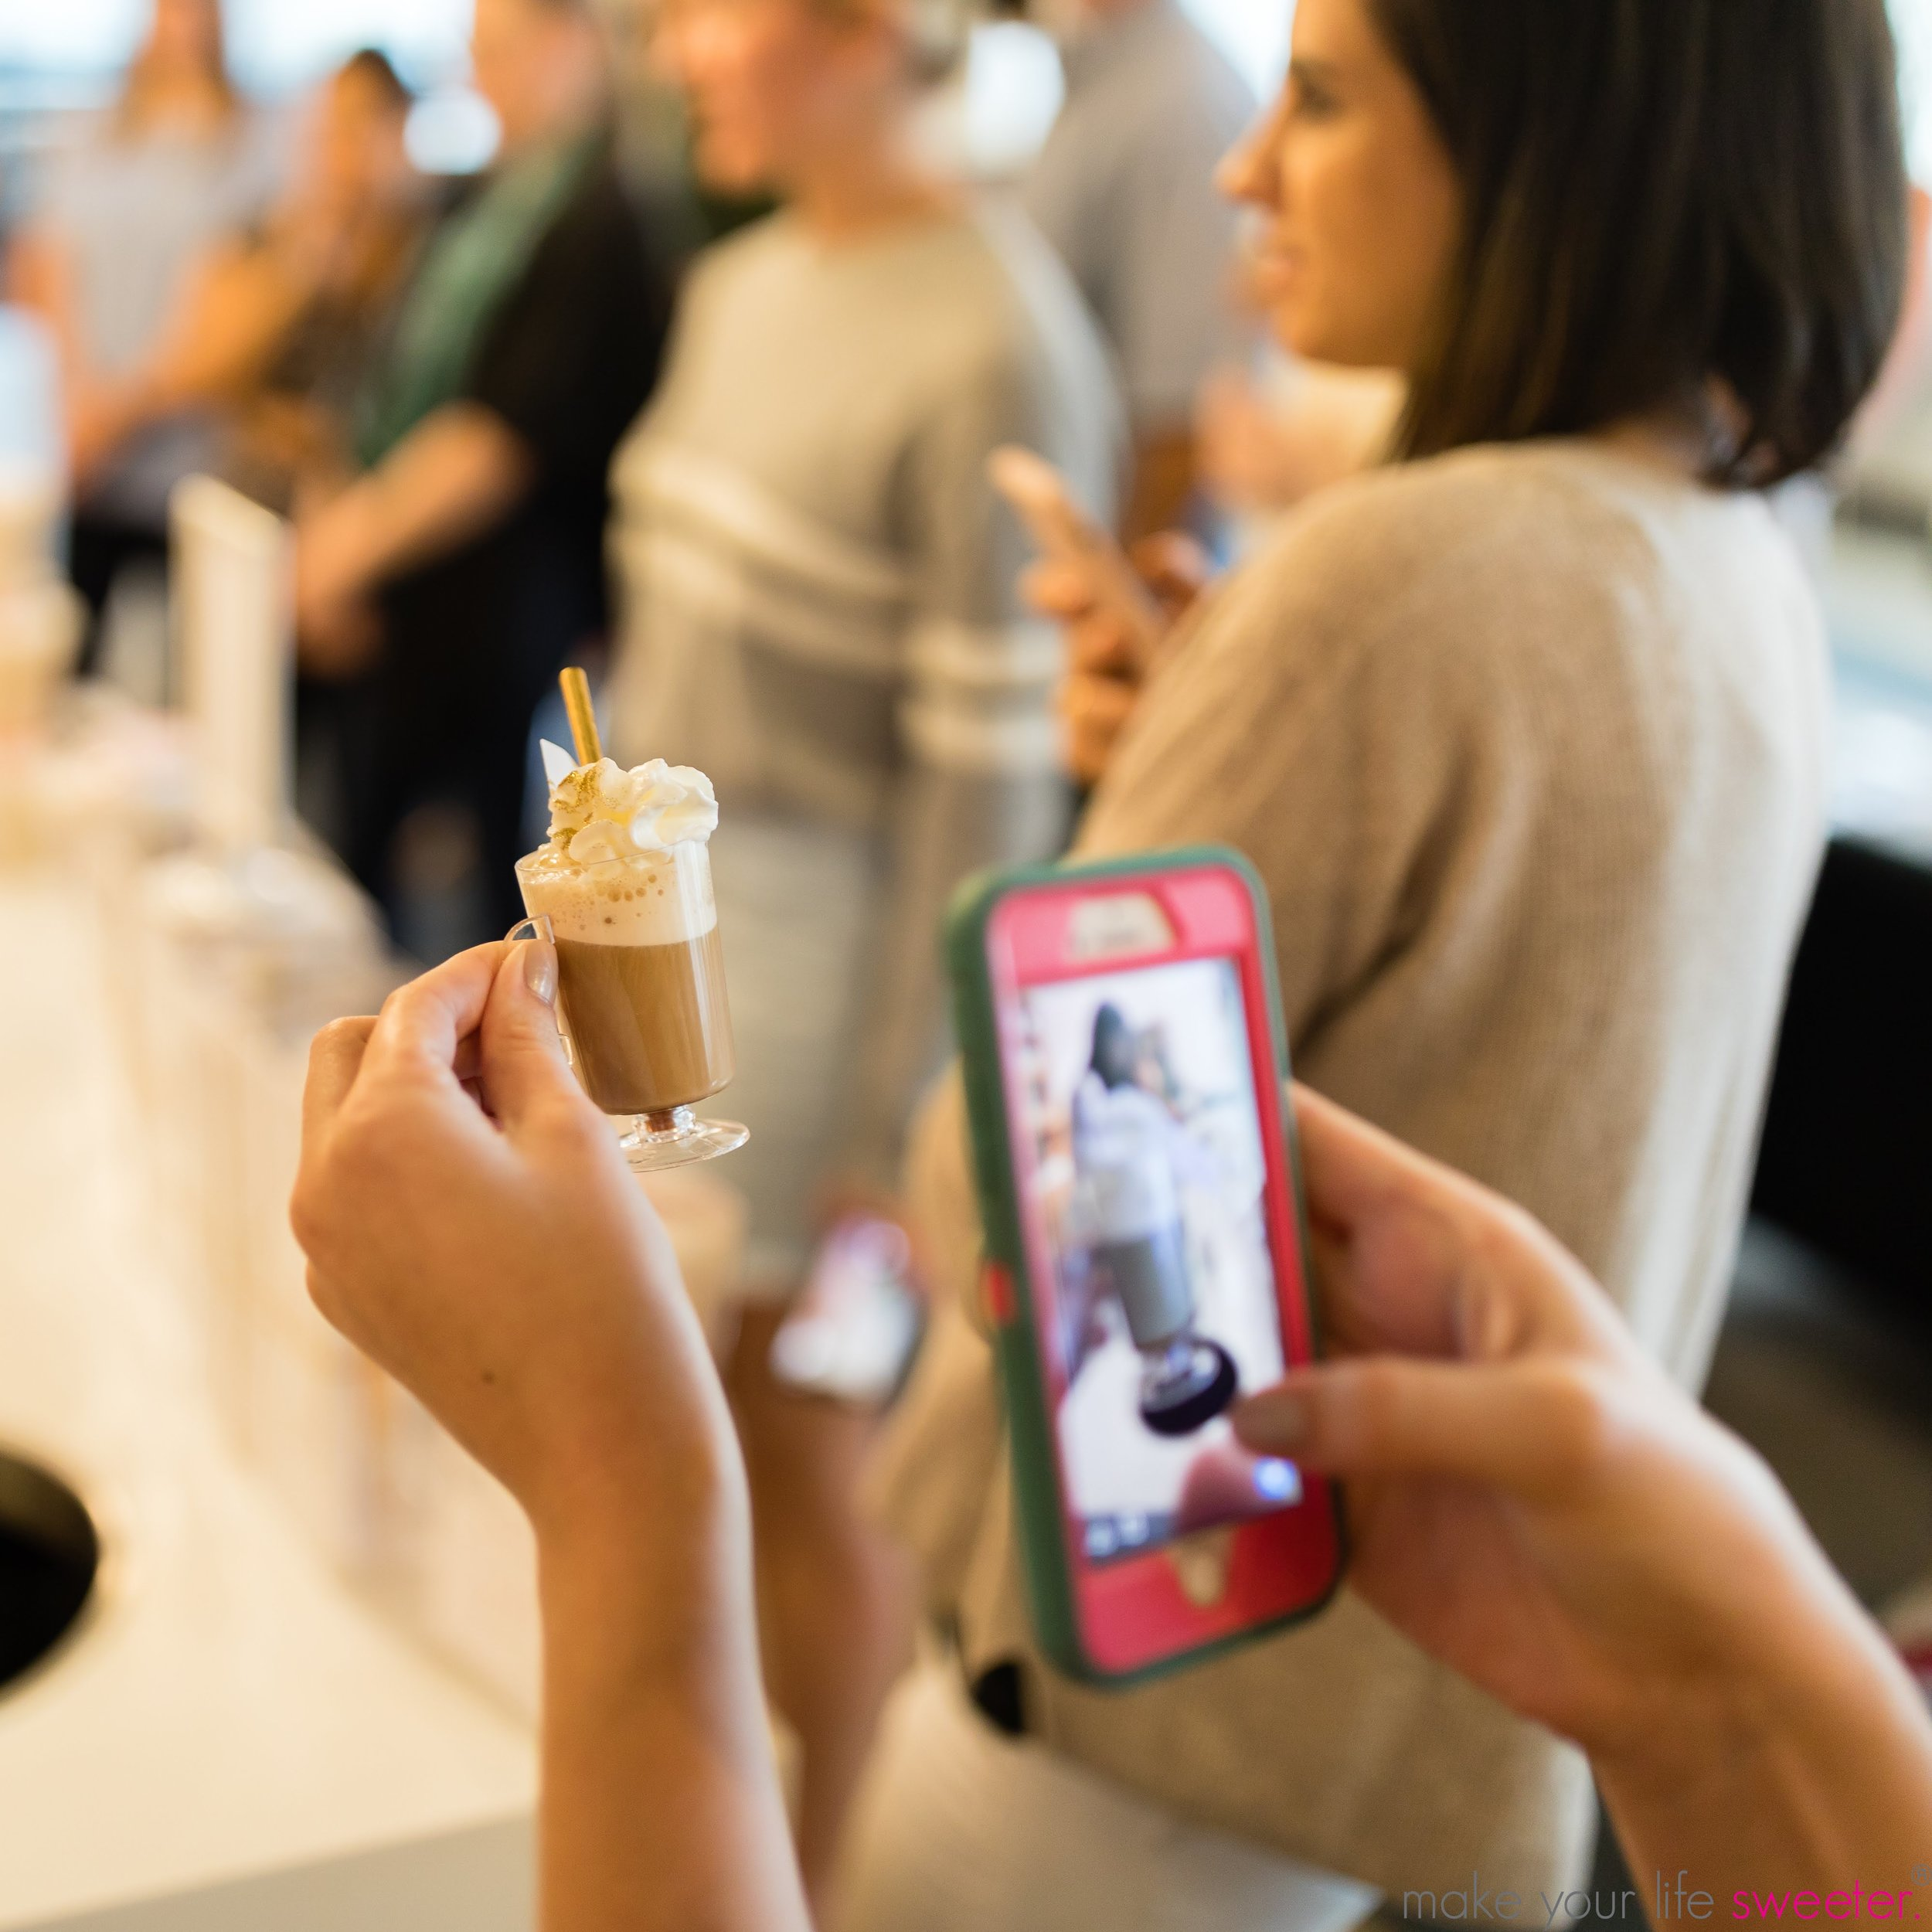 Make Your Life Sweeter Events - D Magazine Office Affogato Bar